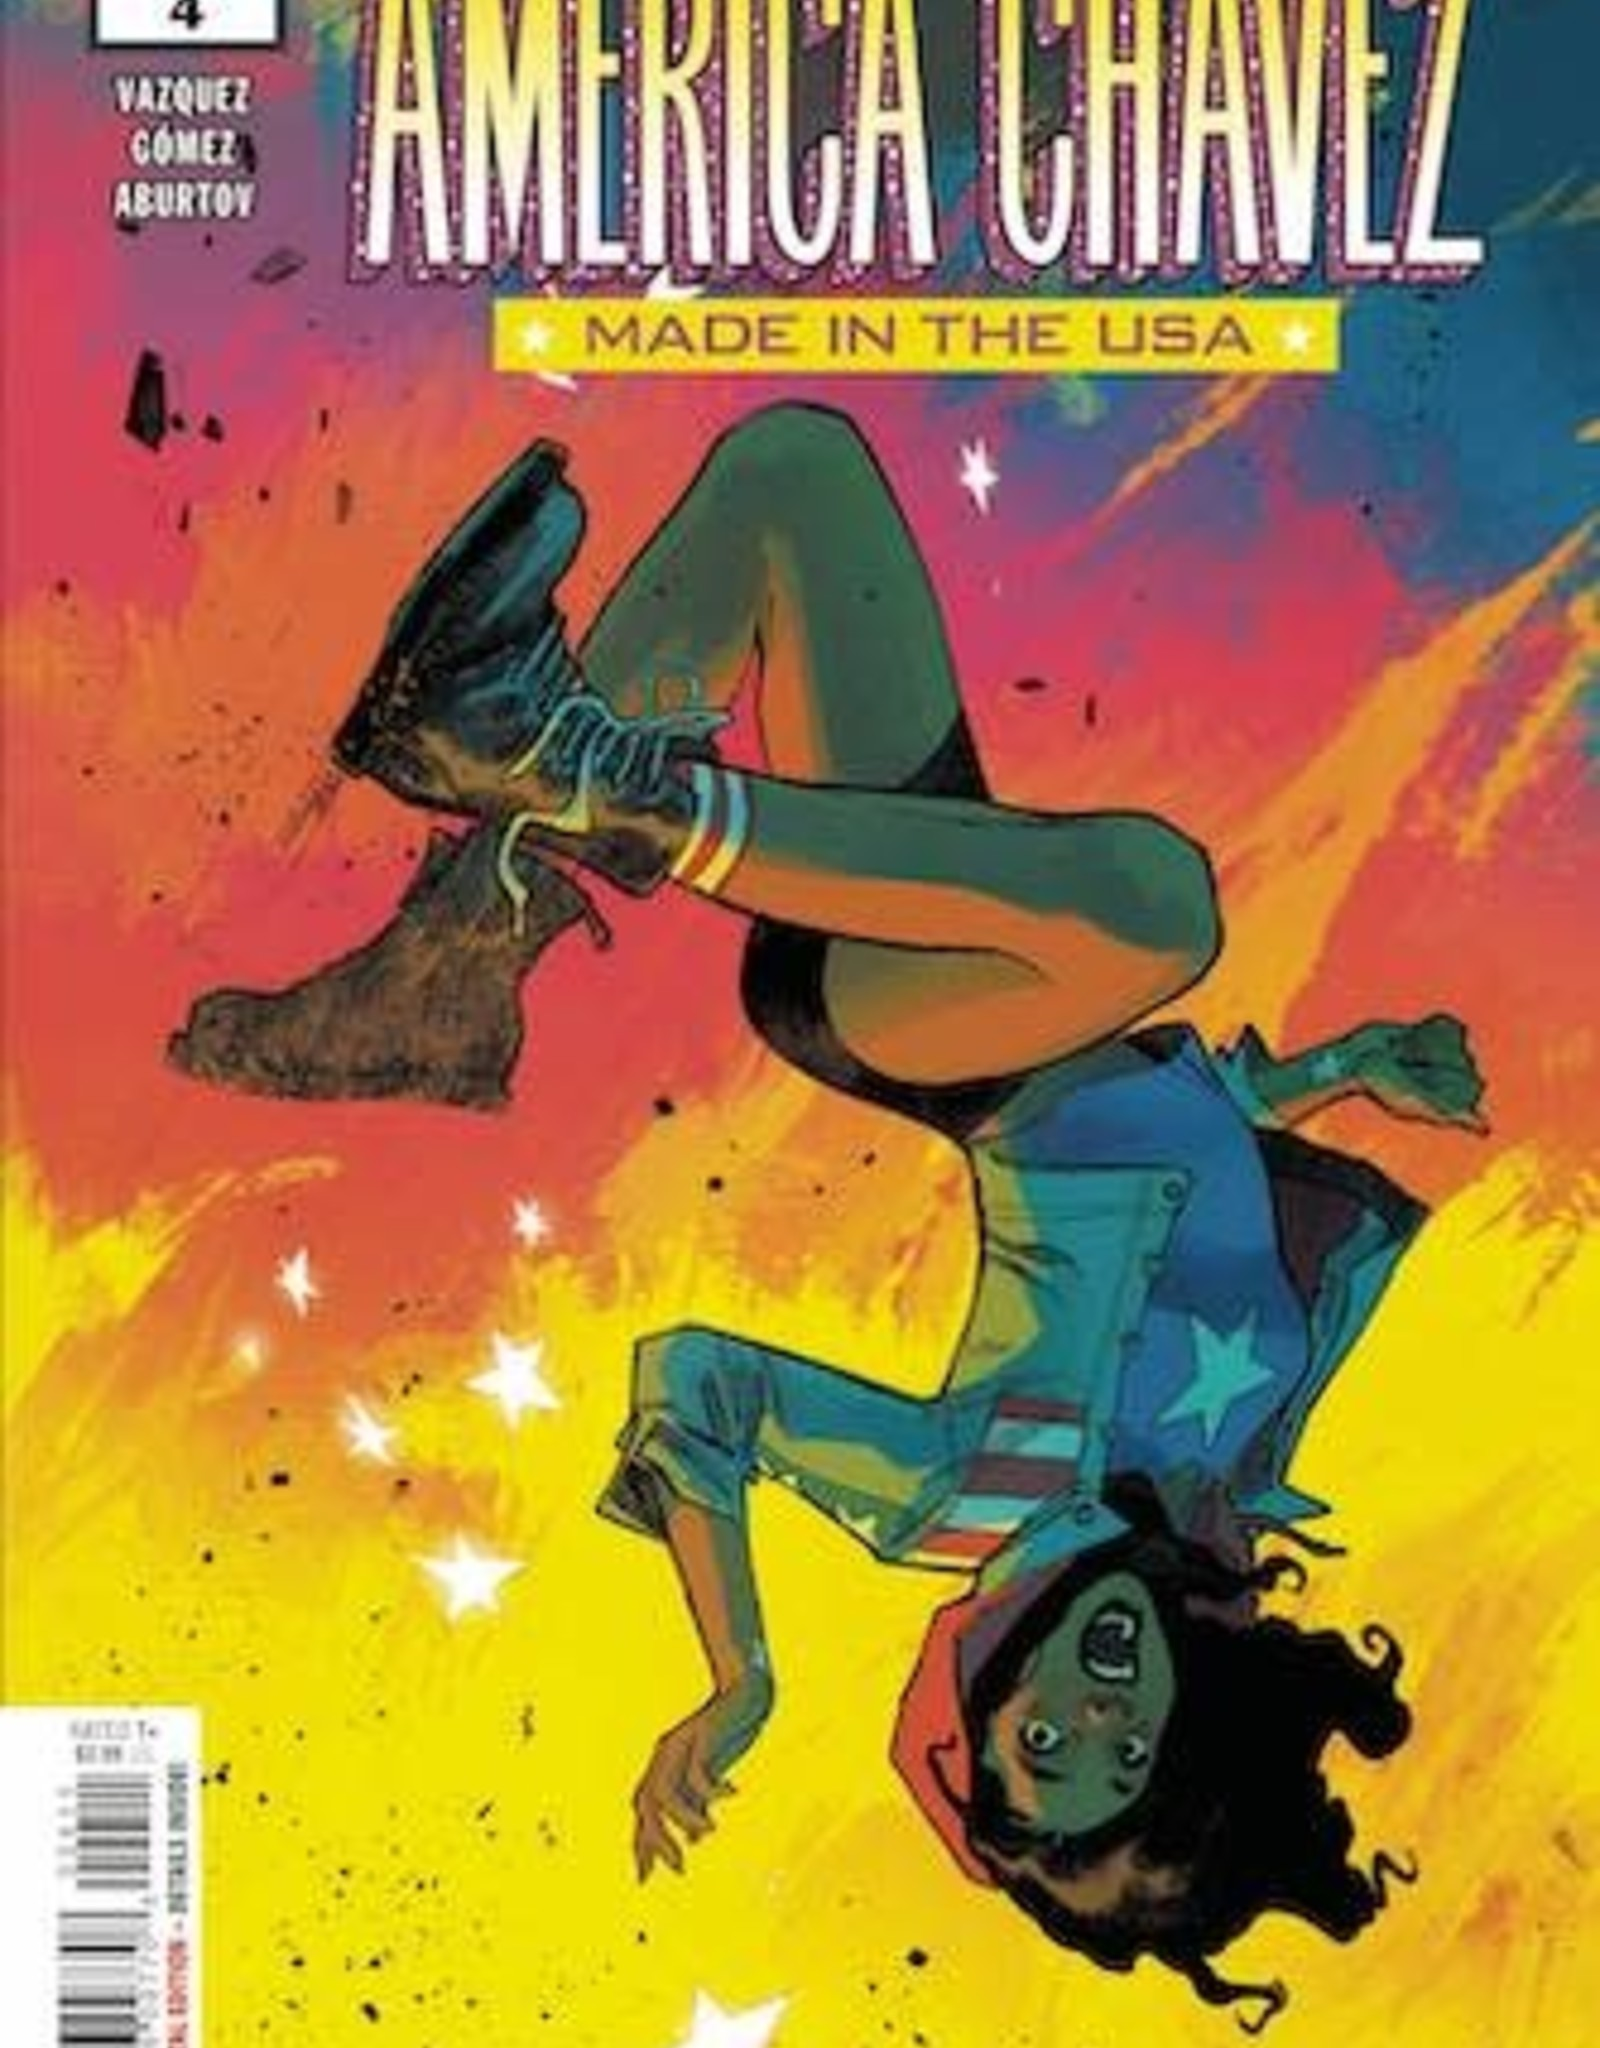 Marvel Comics America Chavez Made In USA #4